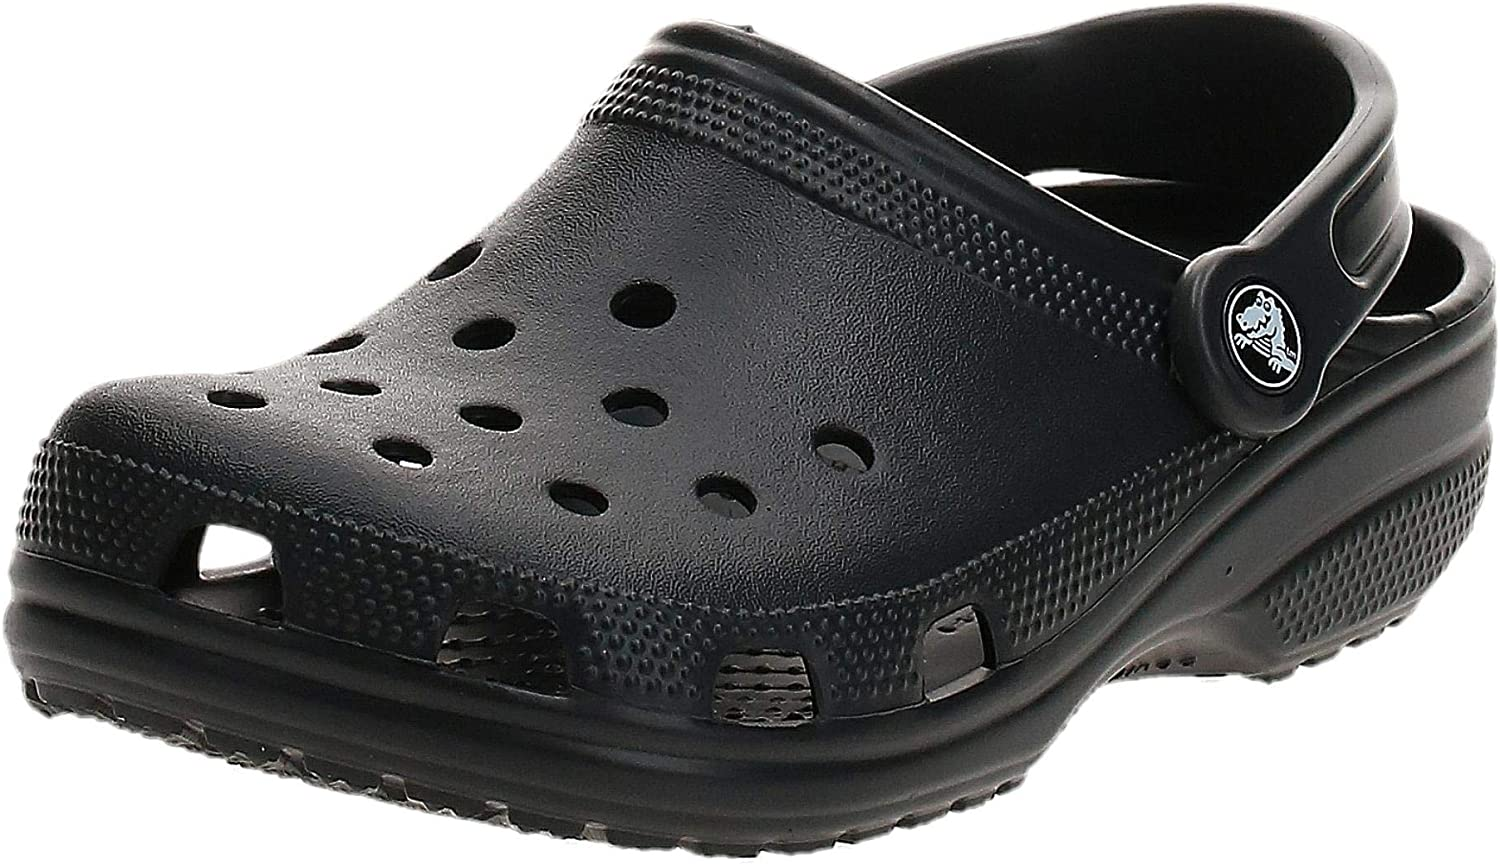 Men's and Women's Classic Clog | Water Shoes | Comfortable Slip On Shoes